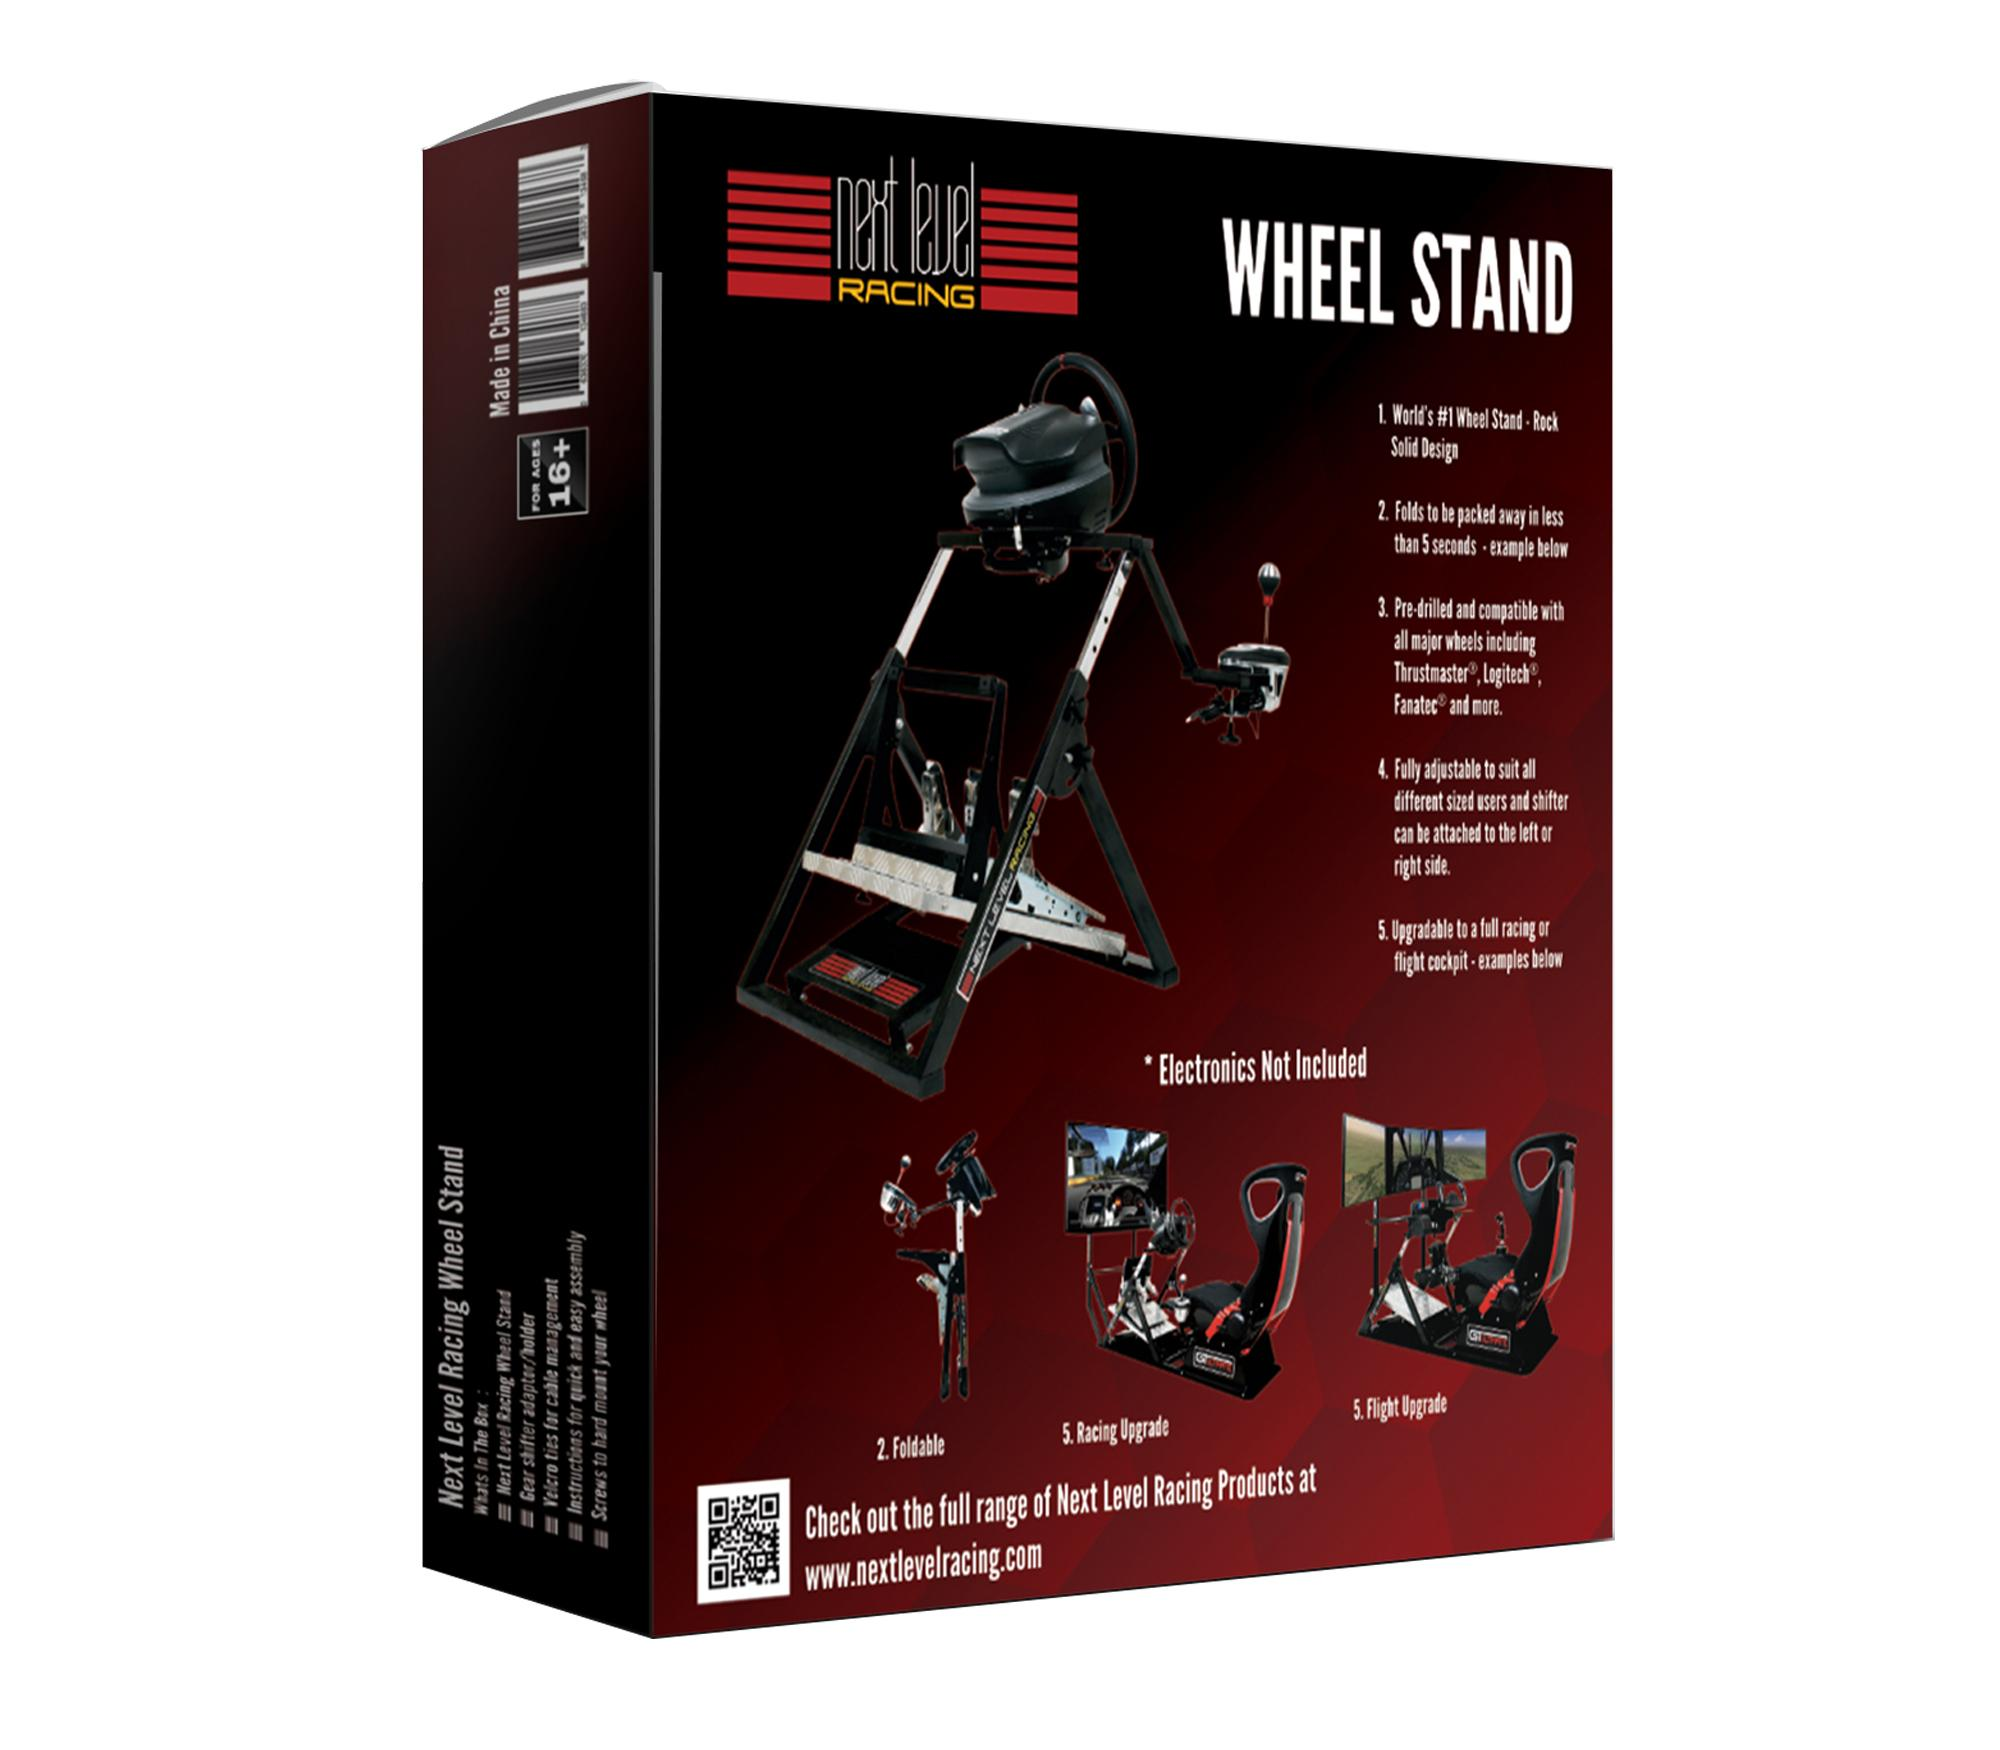 Mua Sn Phm Next Level Racing Steering Wheel Stand T M Gi Tt Pagnian Floormat View Larger